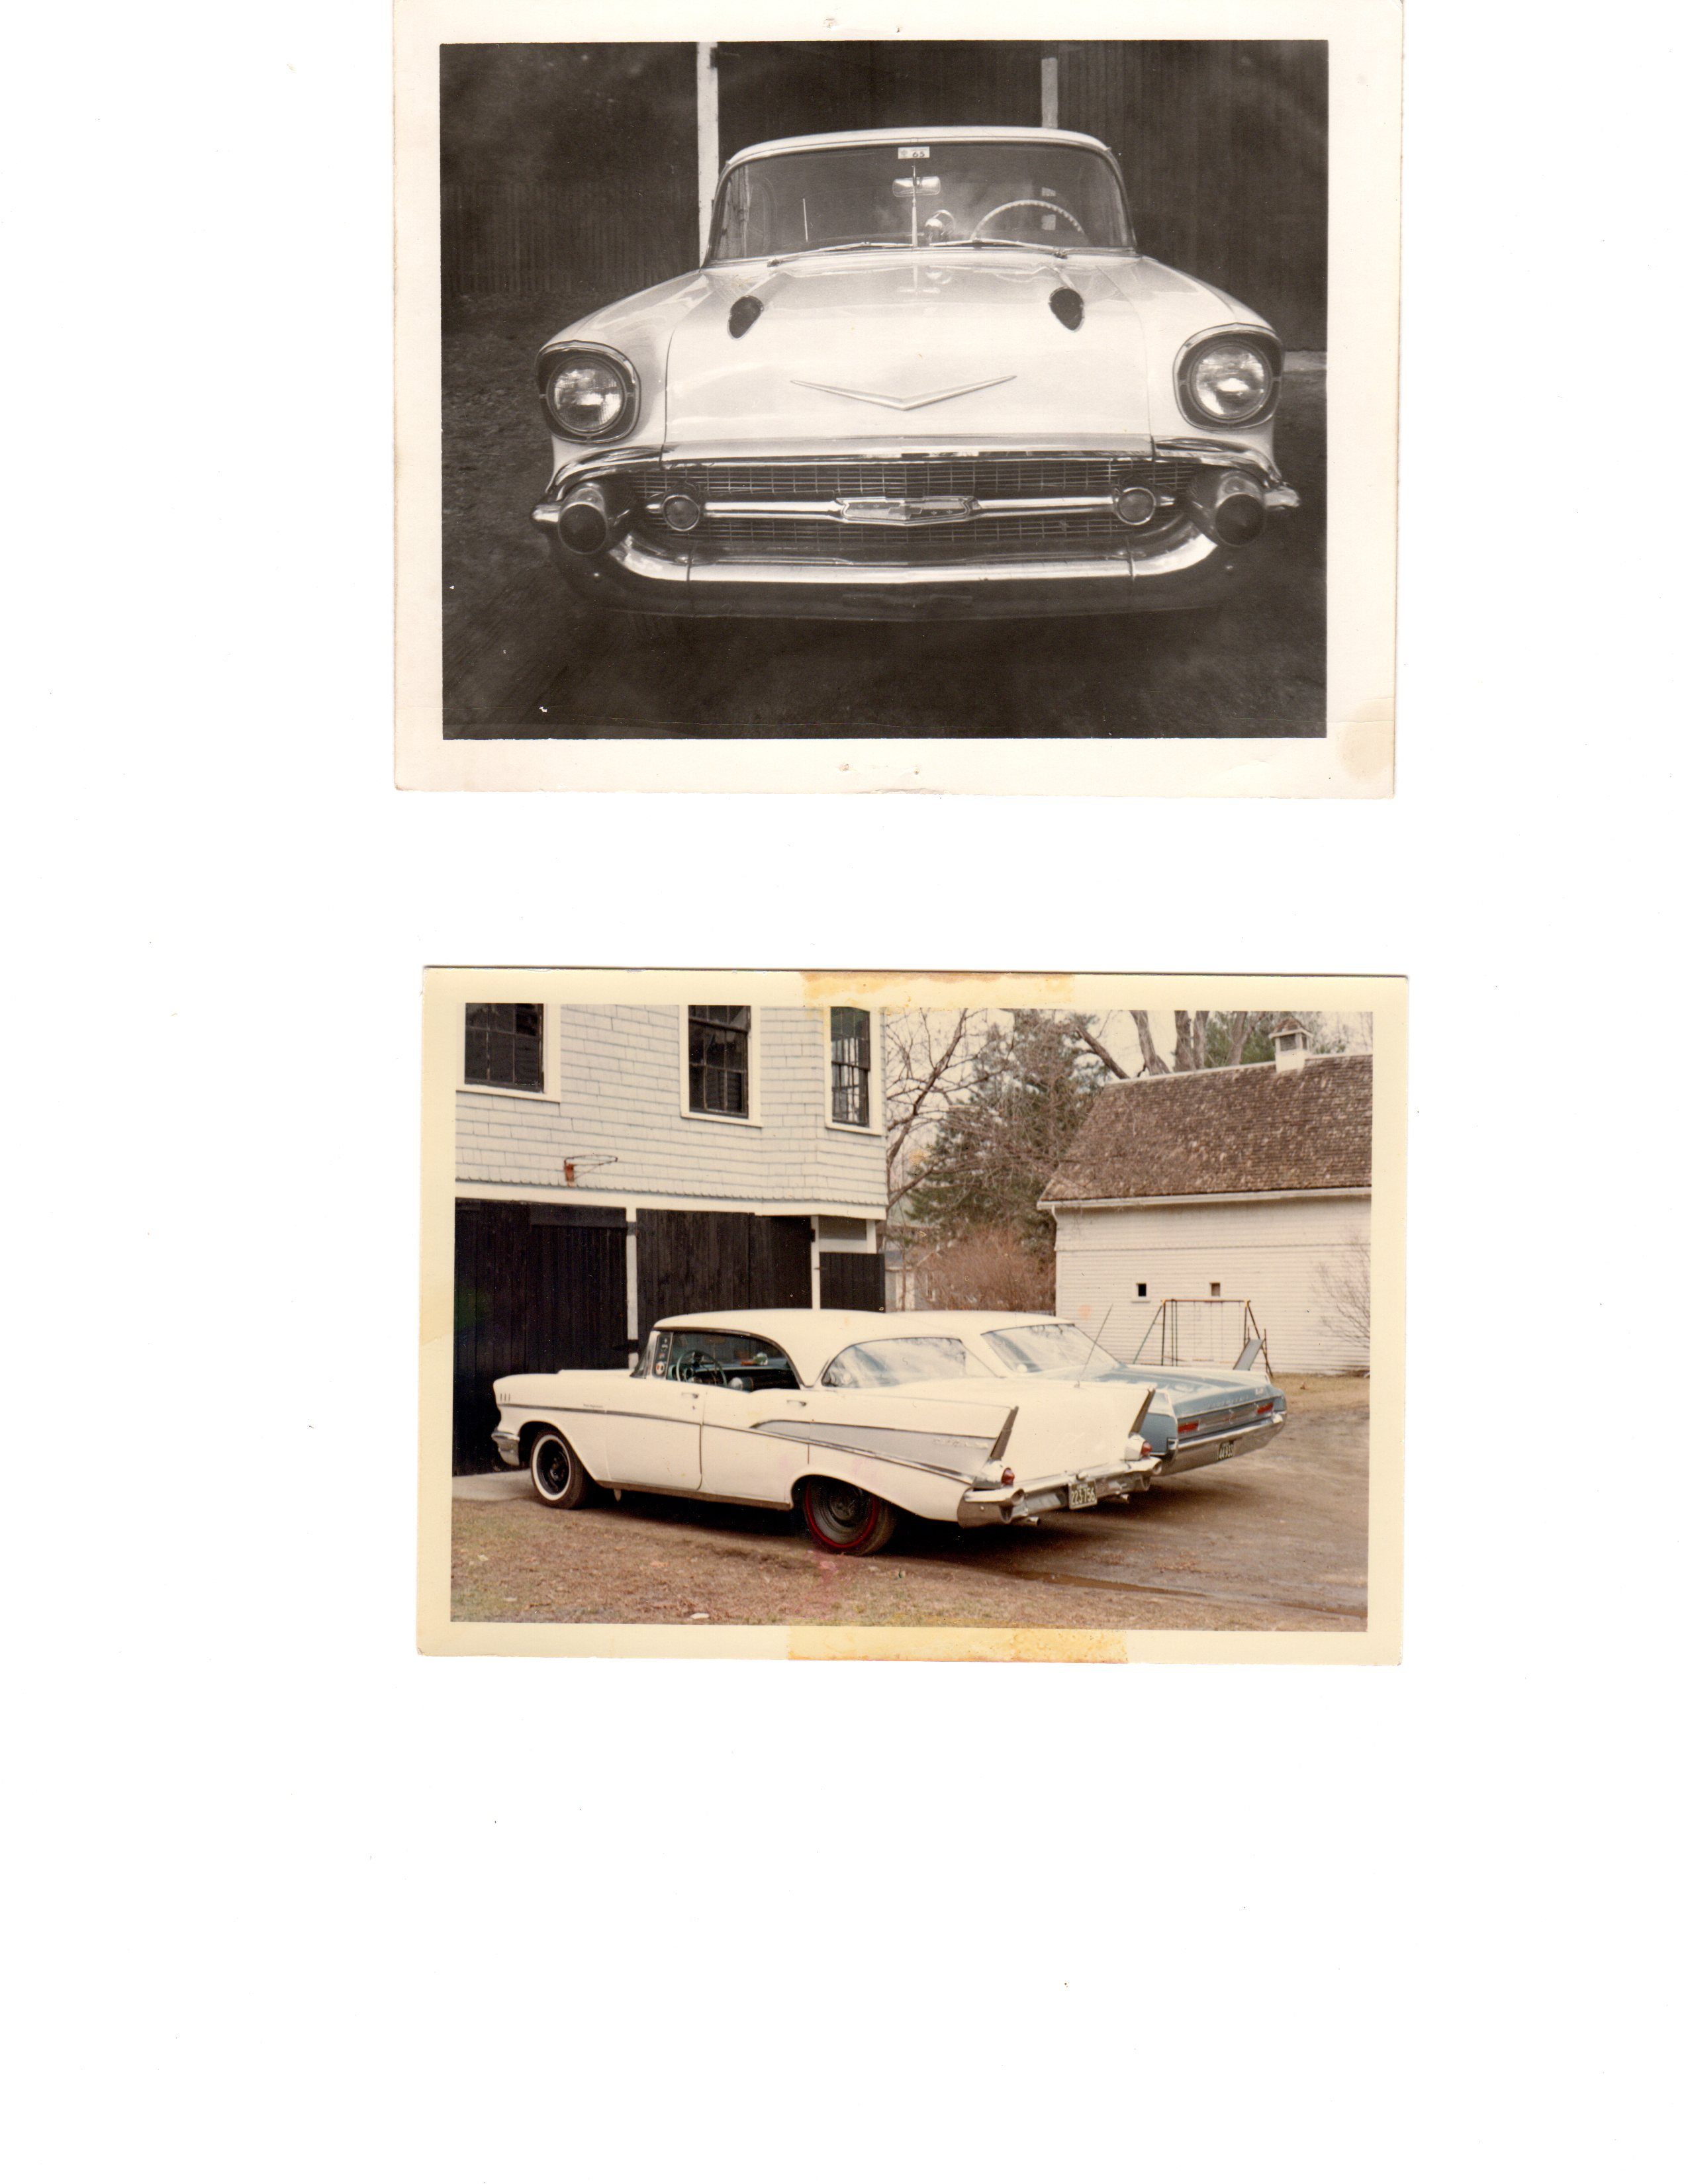 1957 Bel Air front and rear.jpg